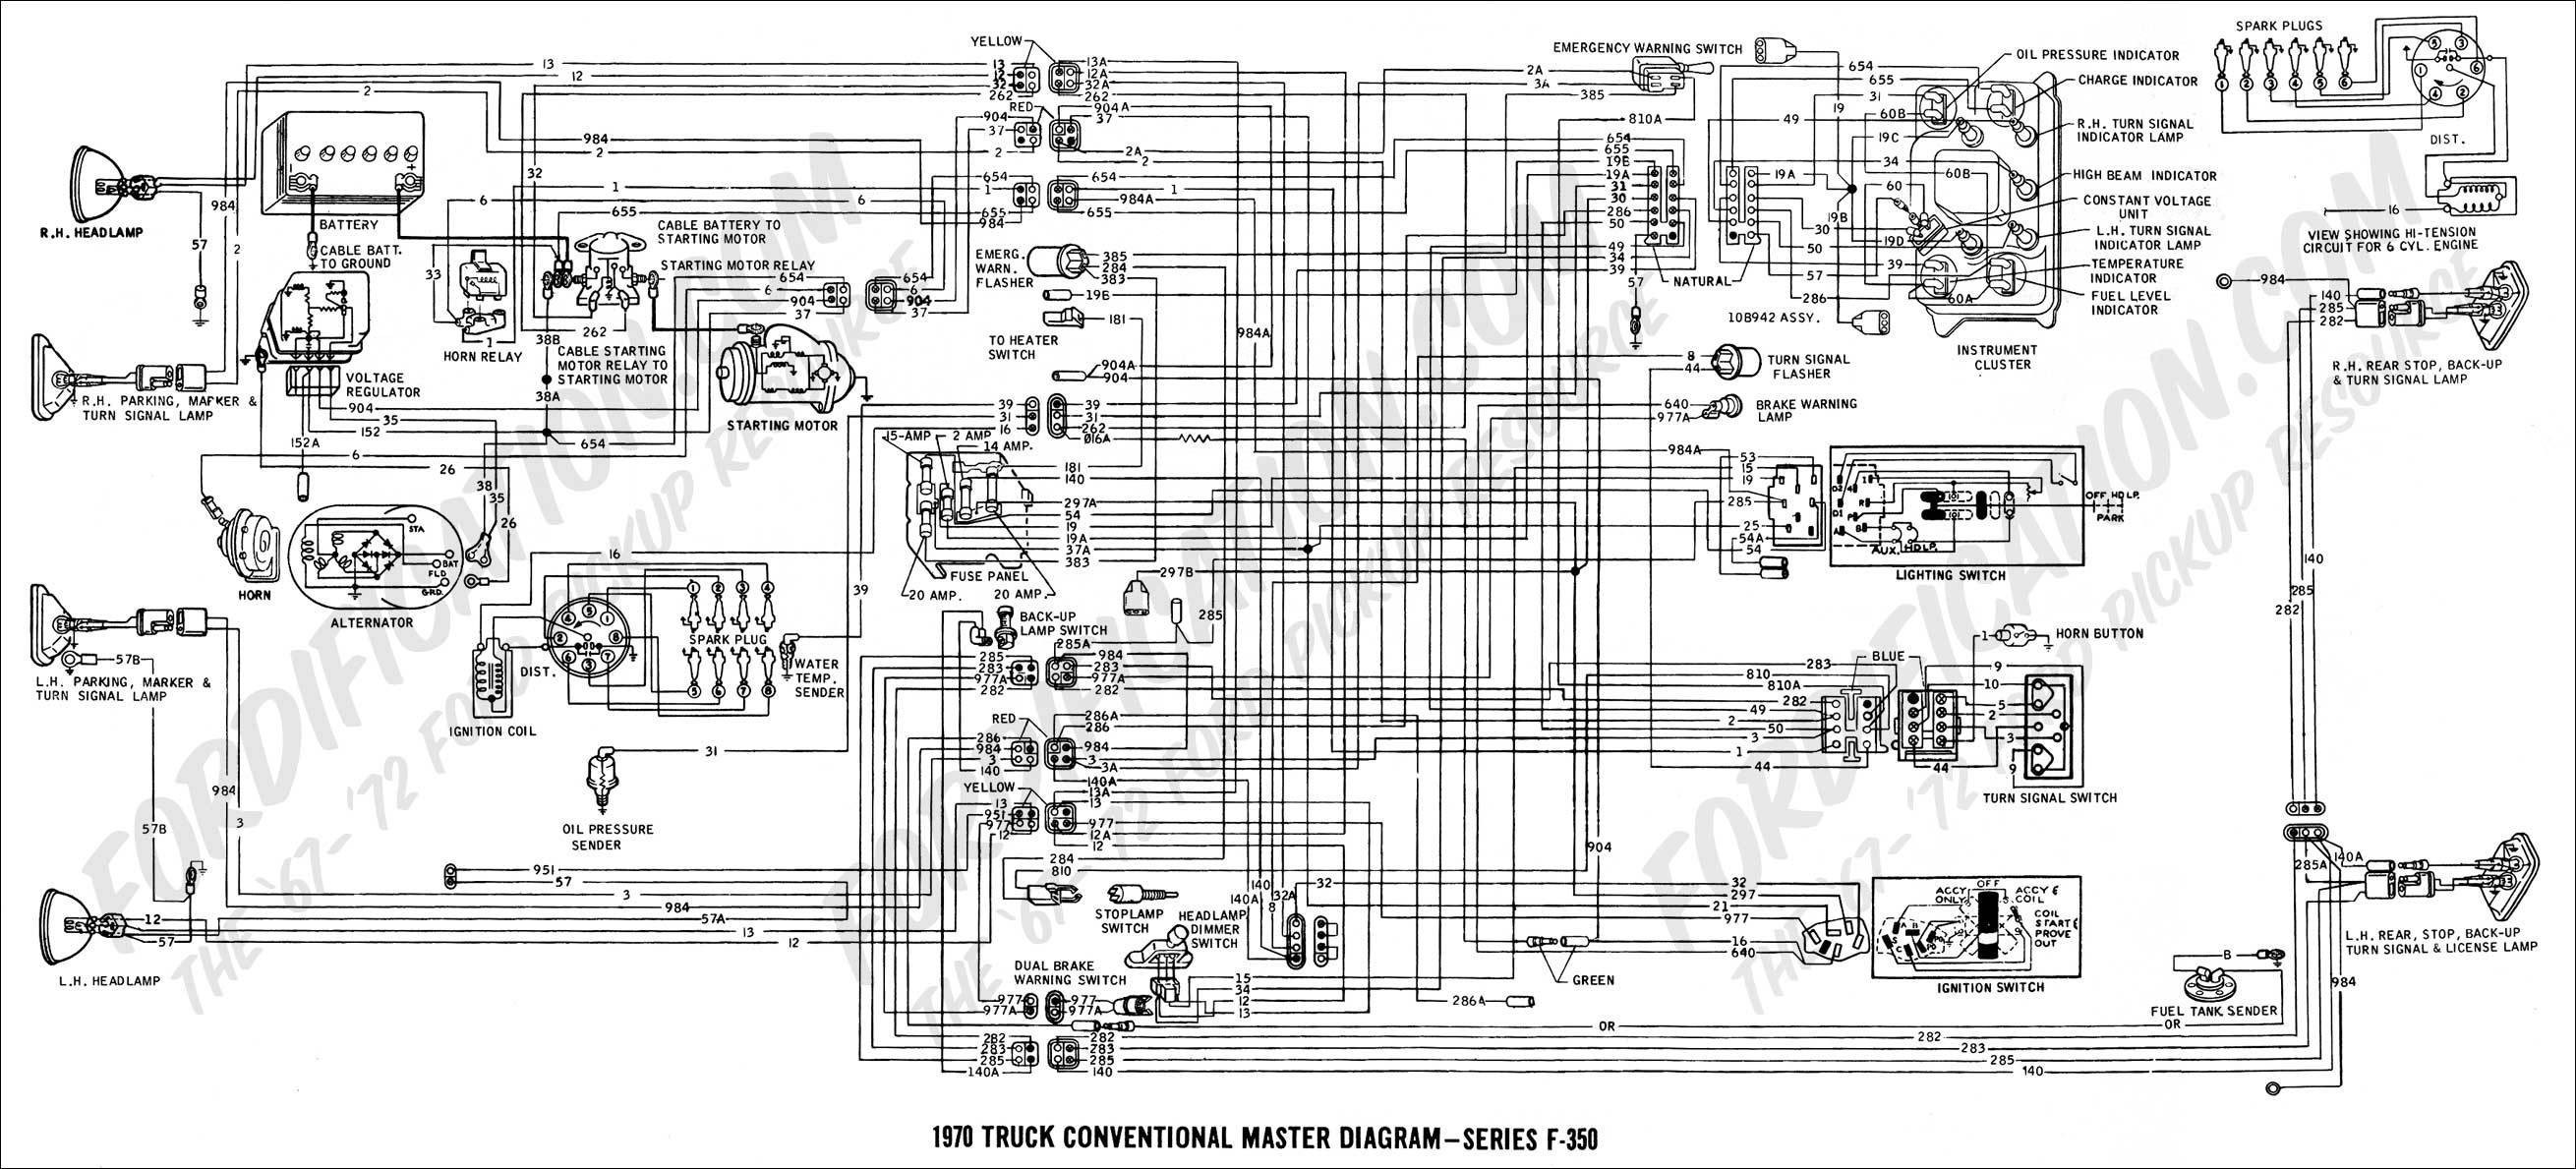 2003 ford Mustang Engine Diagram 2003 ford F250 Wiring Diagram Line Creating Materials Linear Load Of 2003 ford Mustang Engine Diagram